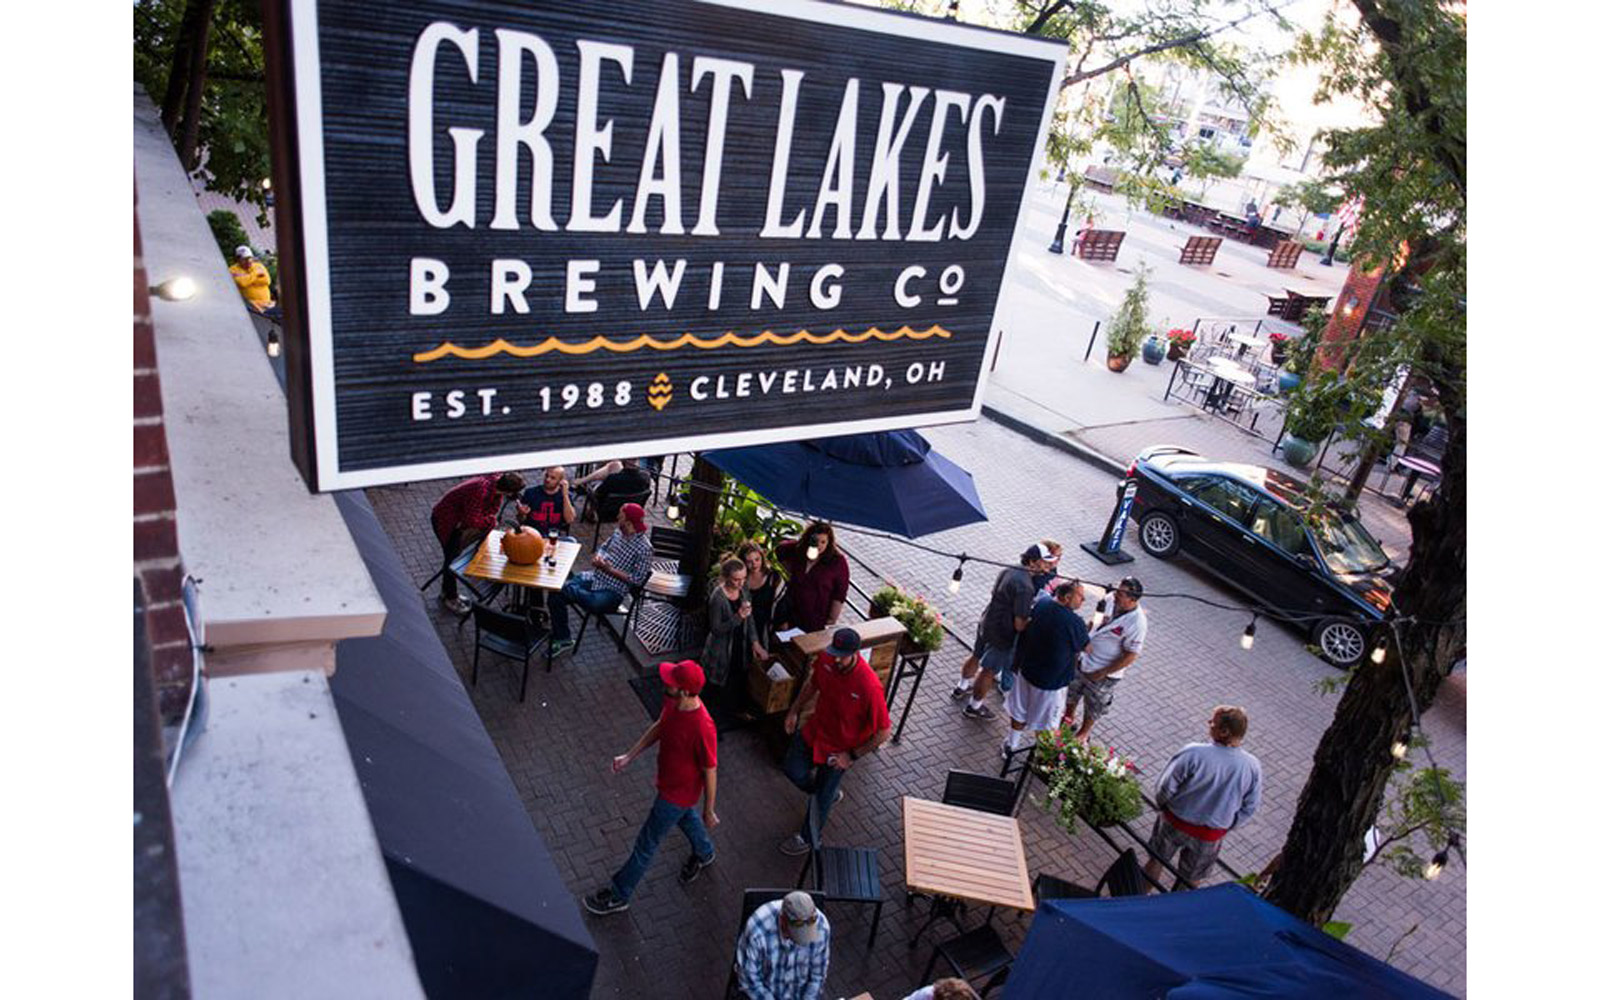 Ohio: Great Lakes Brewing Co.